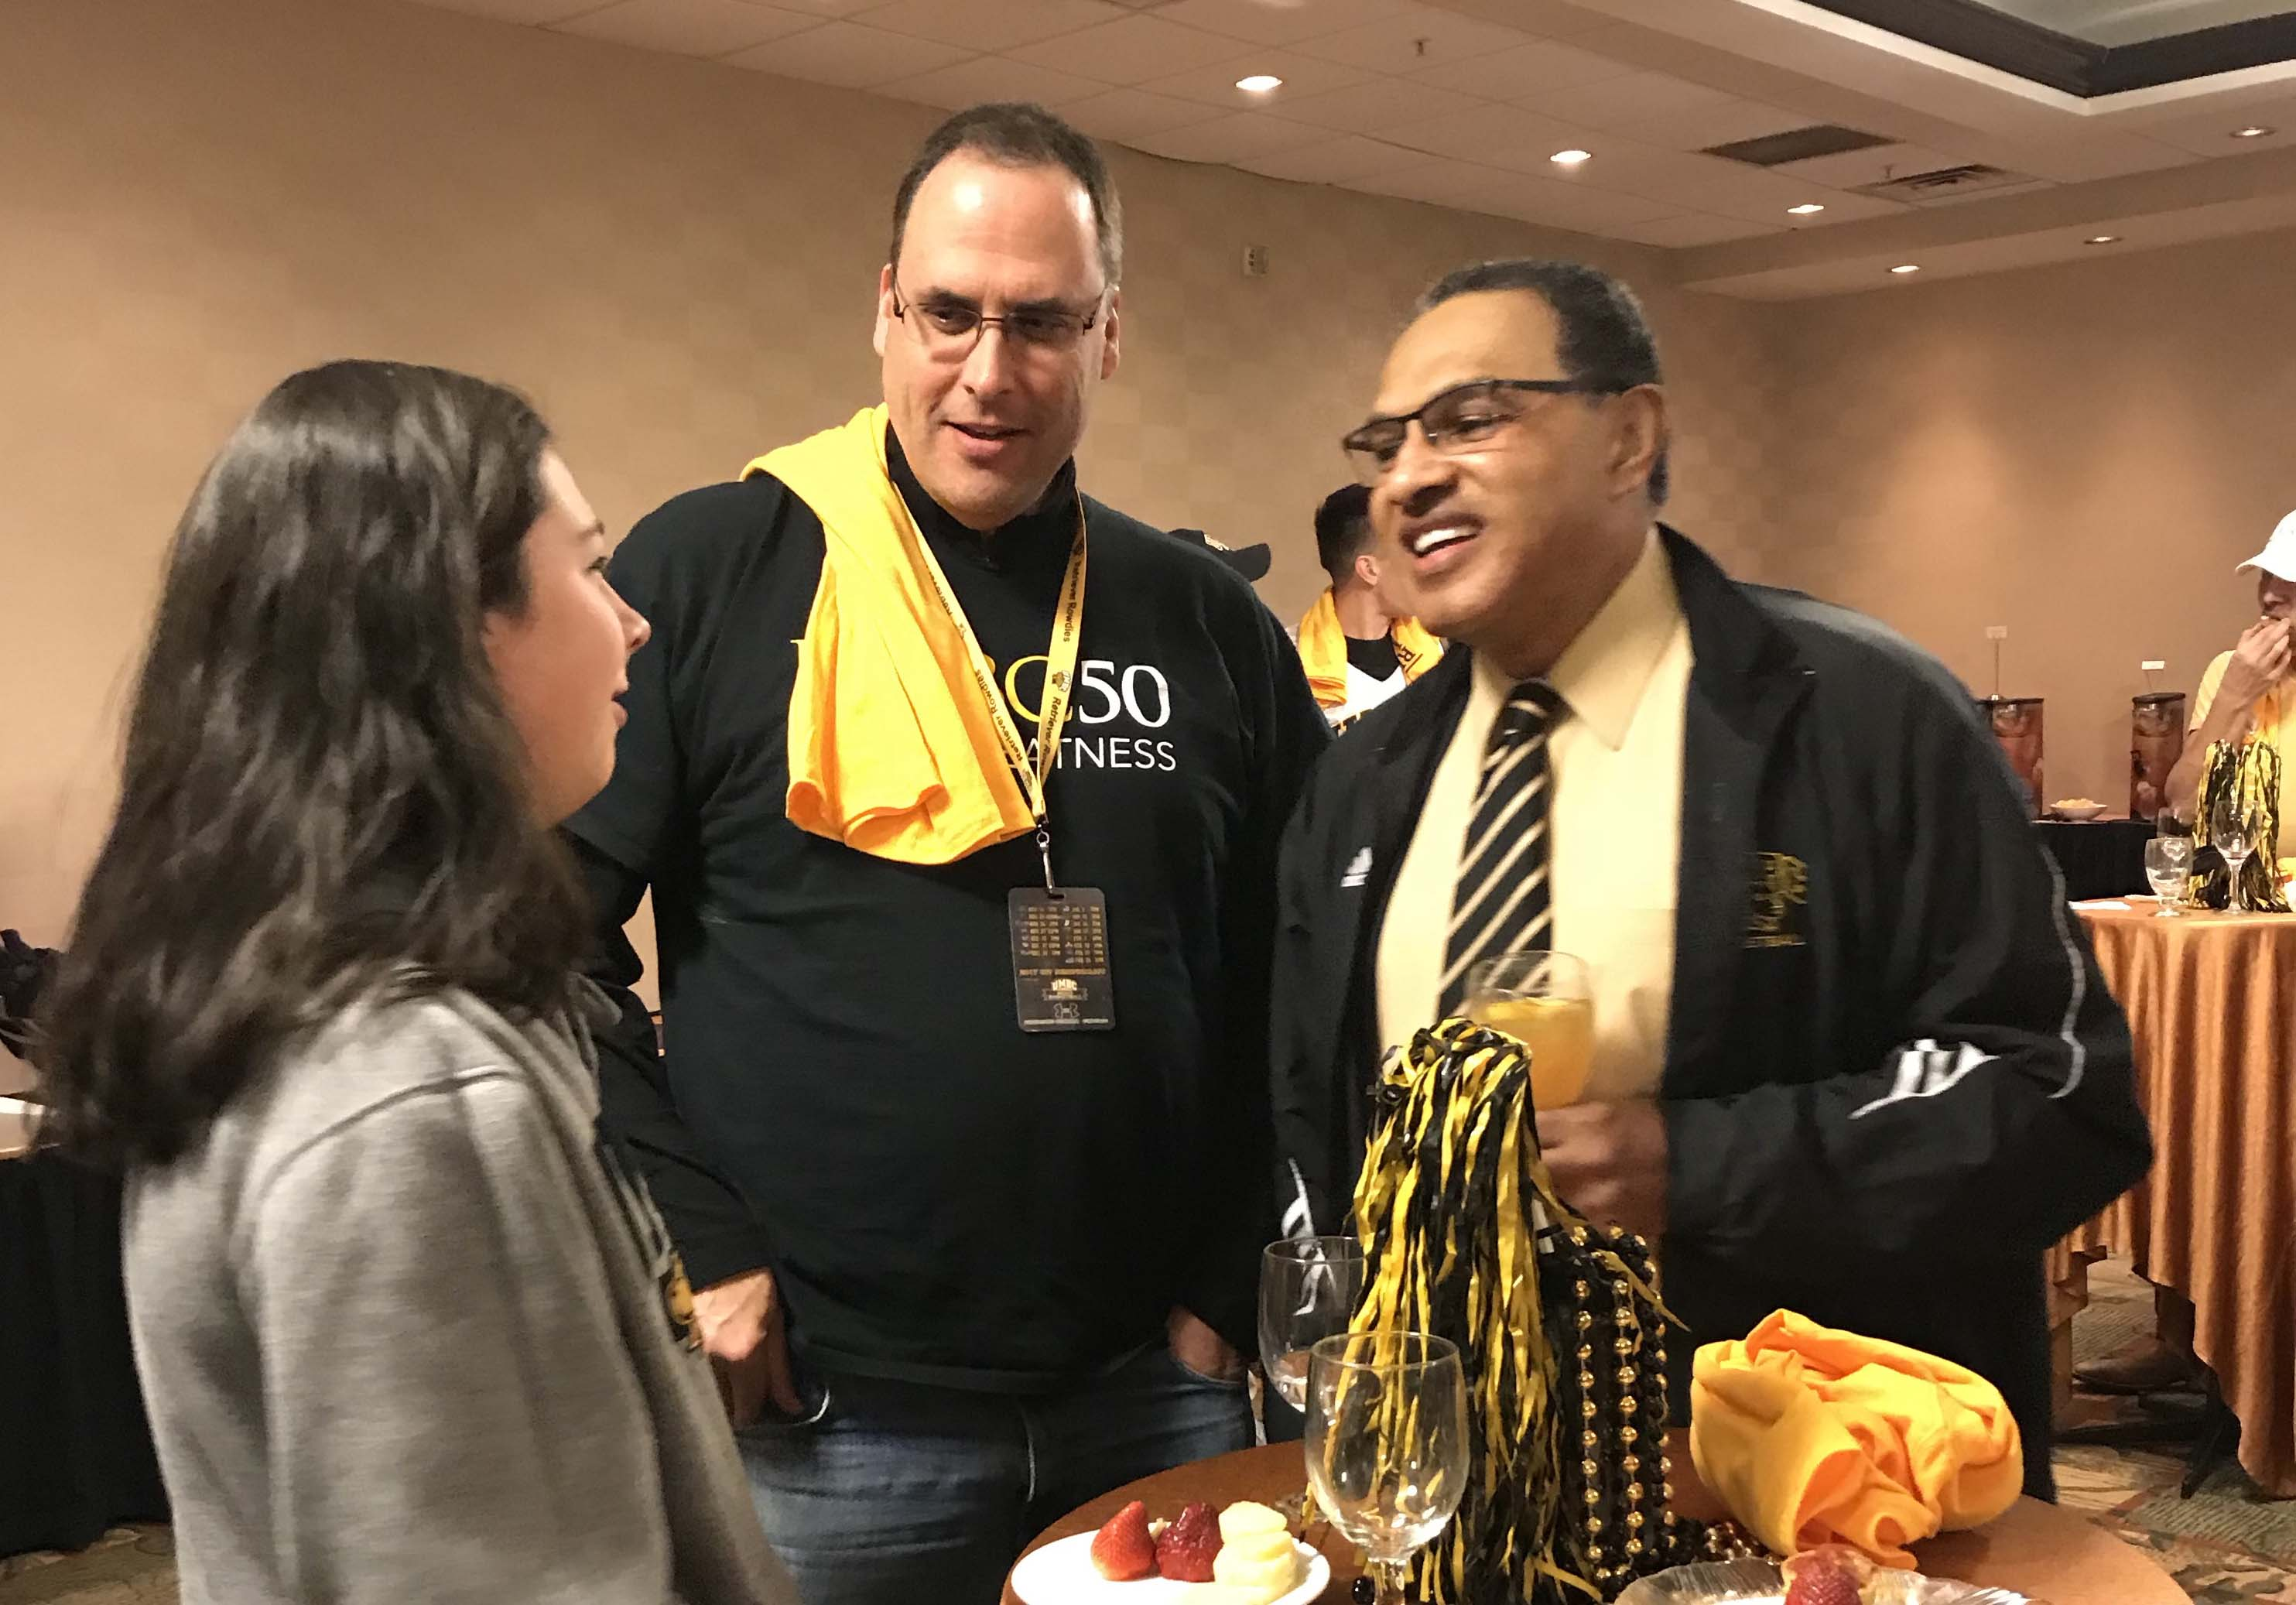 Hrabowski talks with others around round tables with UMBC gear